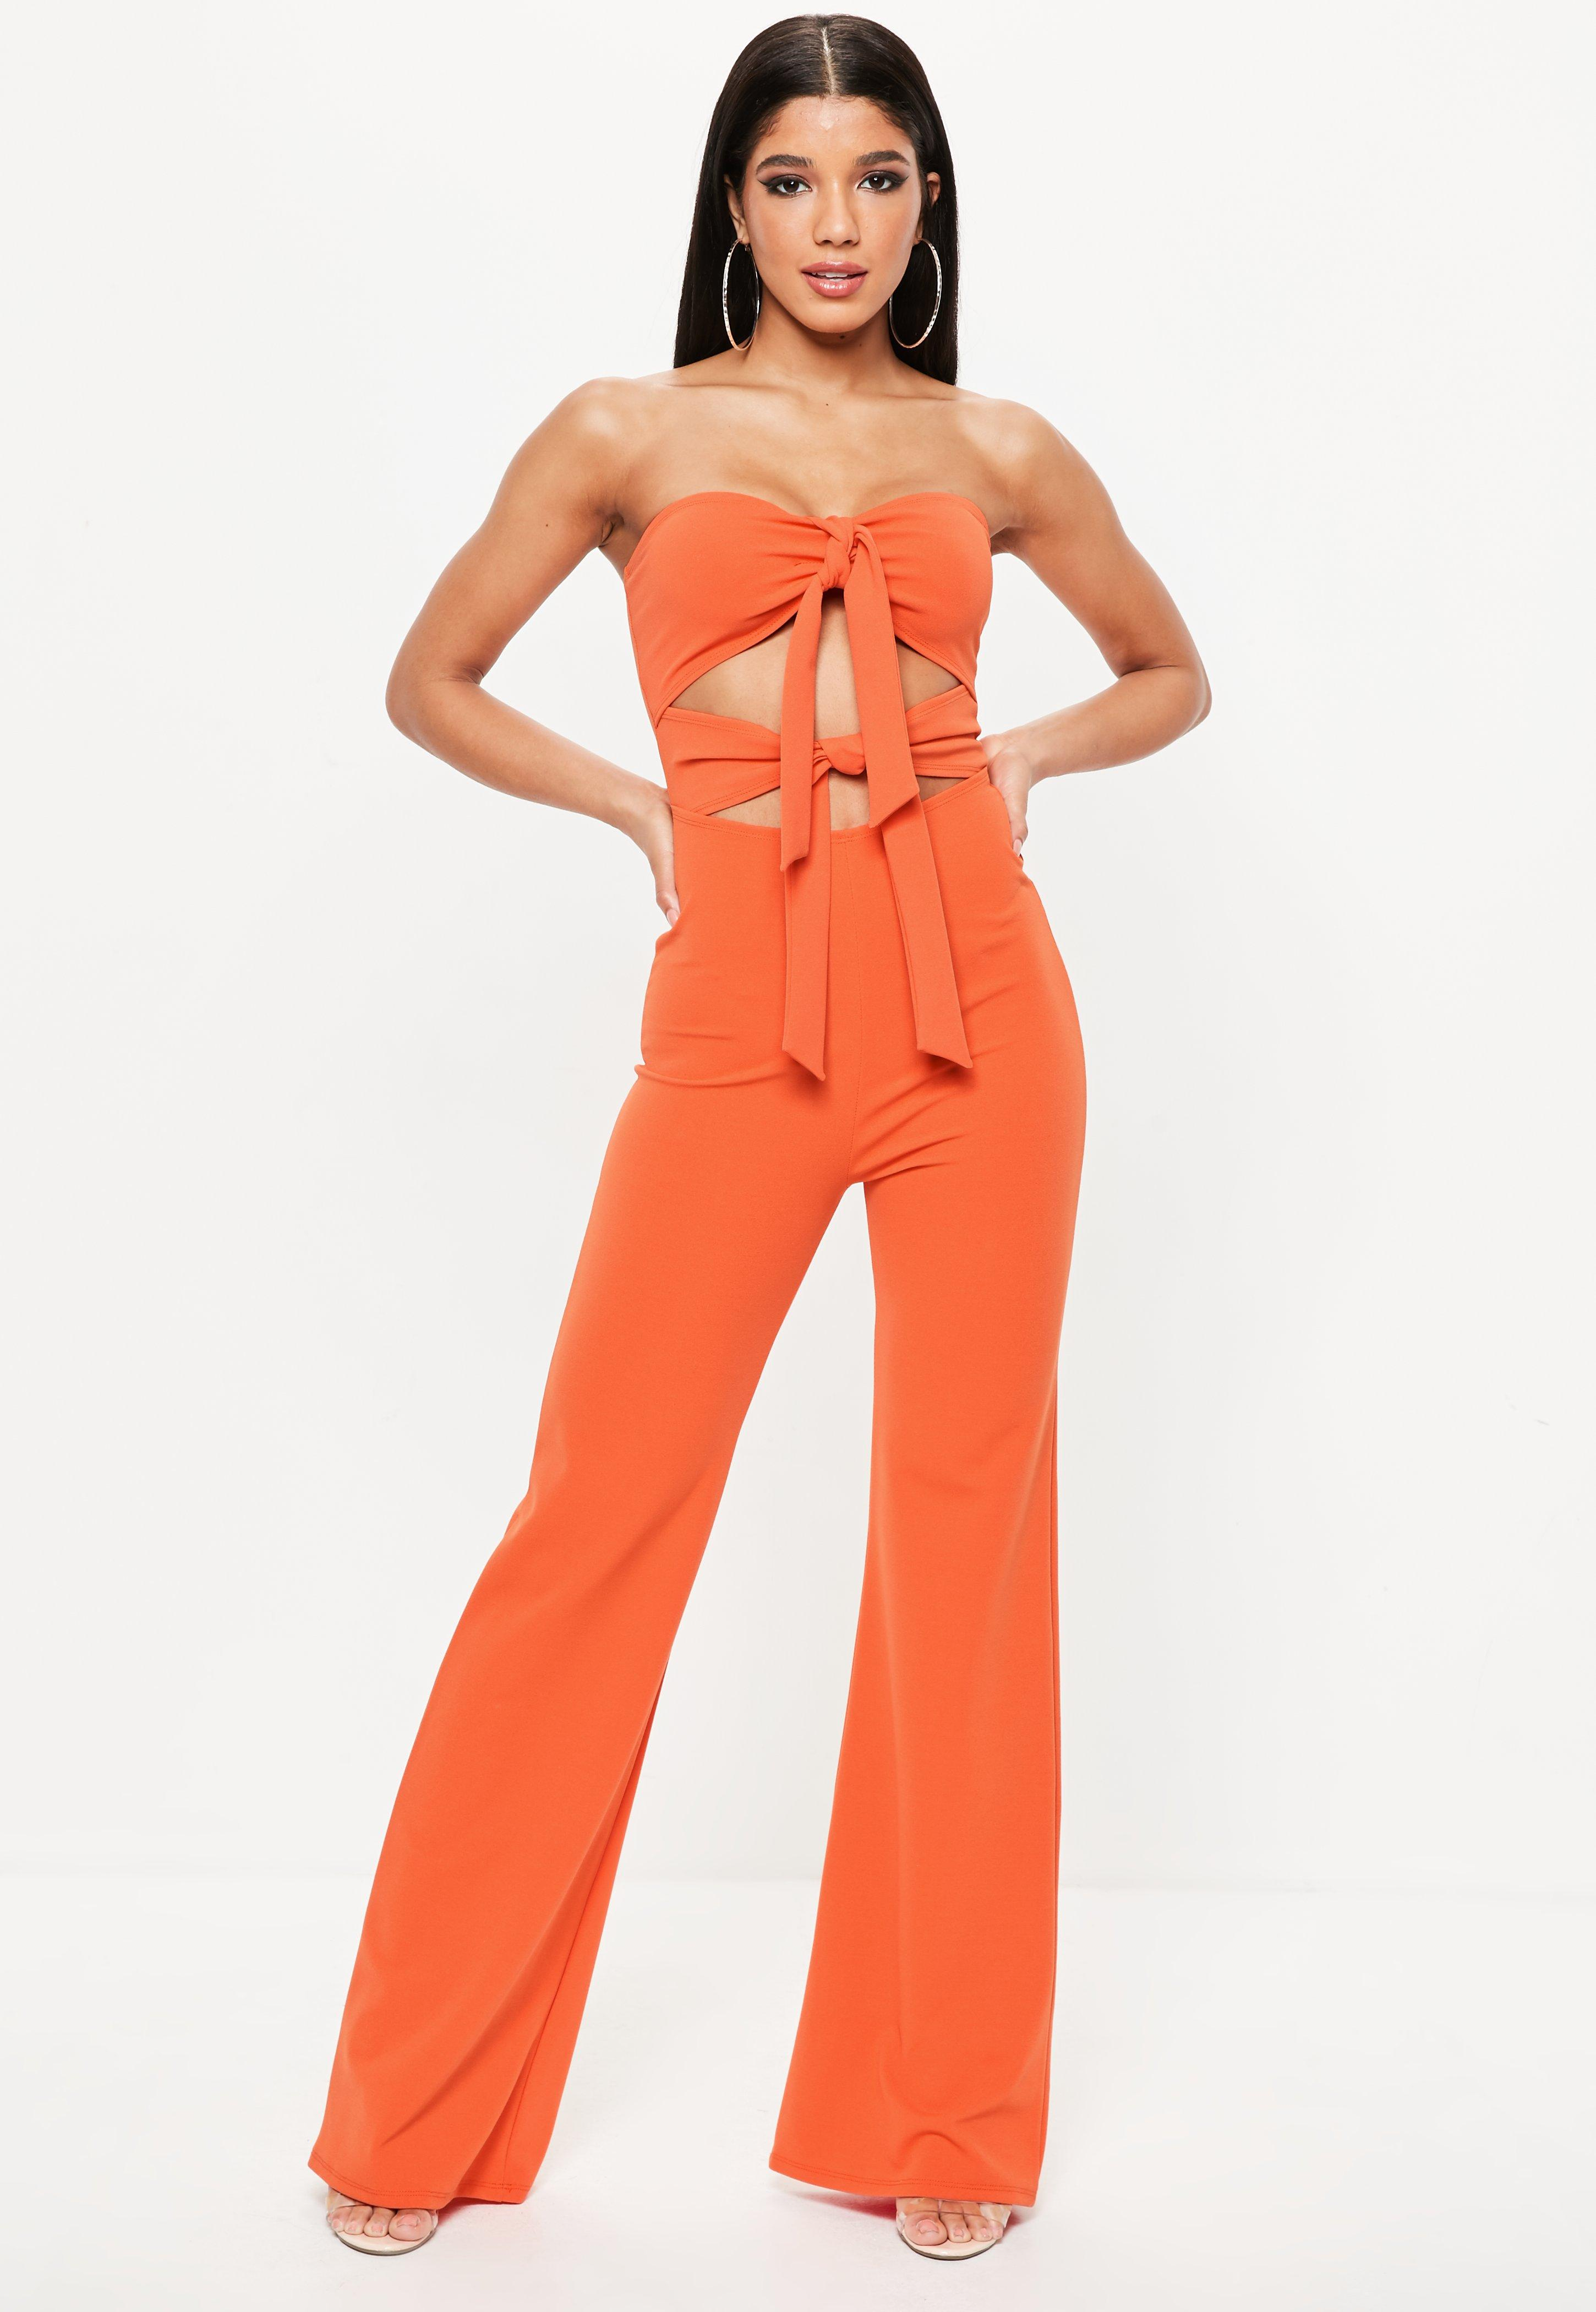 Missguided Tie Front Jumpsuit Outlet View Free Shipping From China Free Shipping Release Dates 100% Authentic For Sale 2018 Newest For Sale 9GaSpm